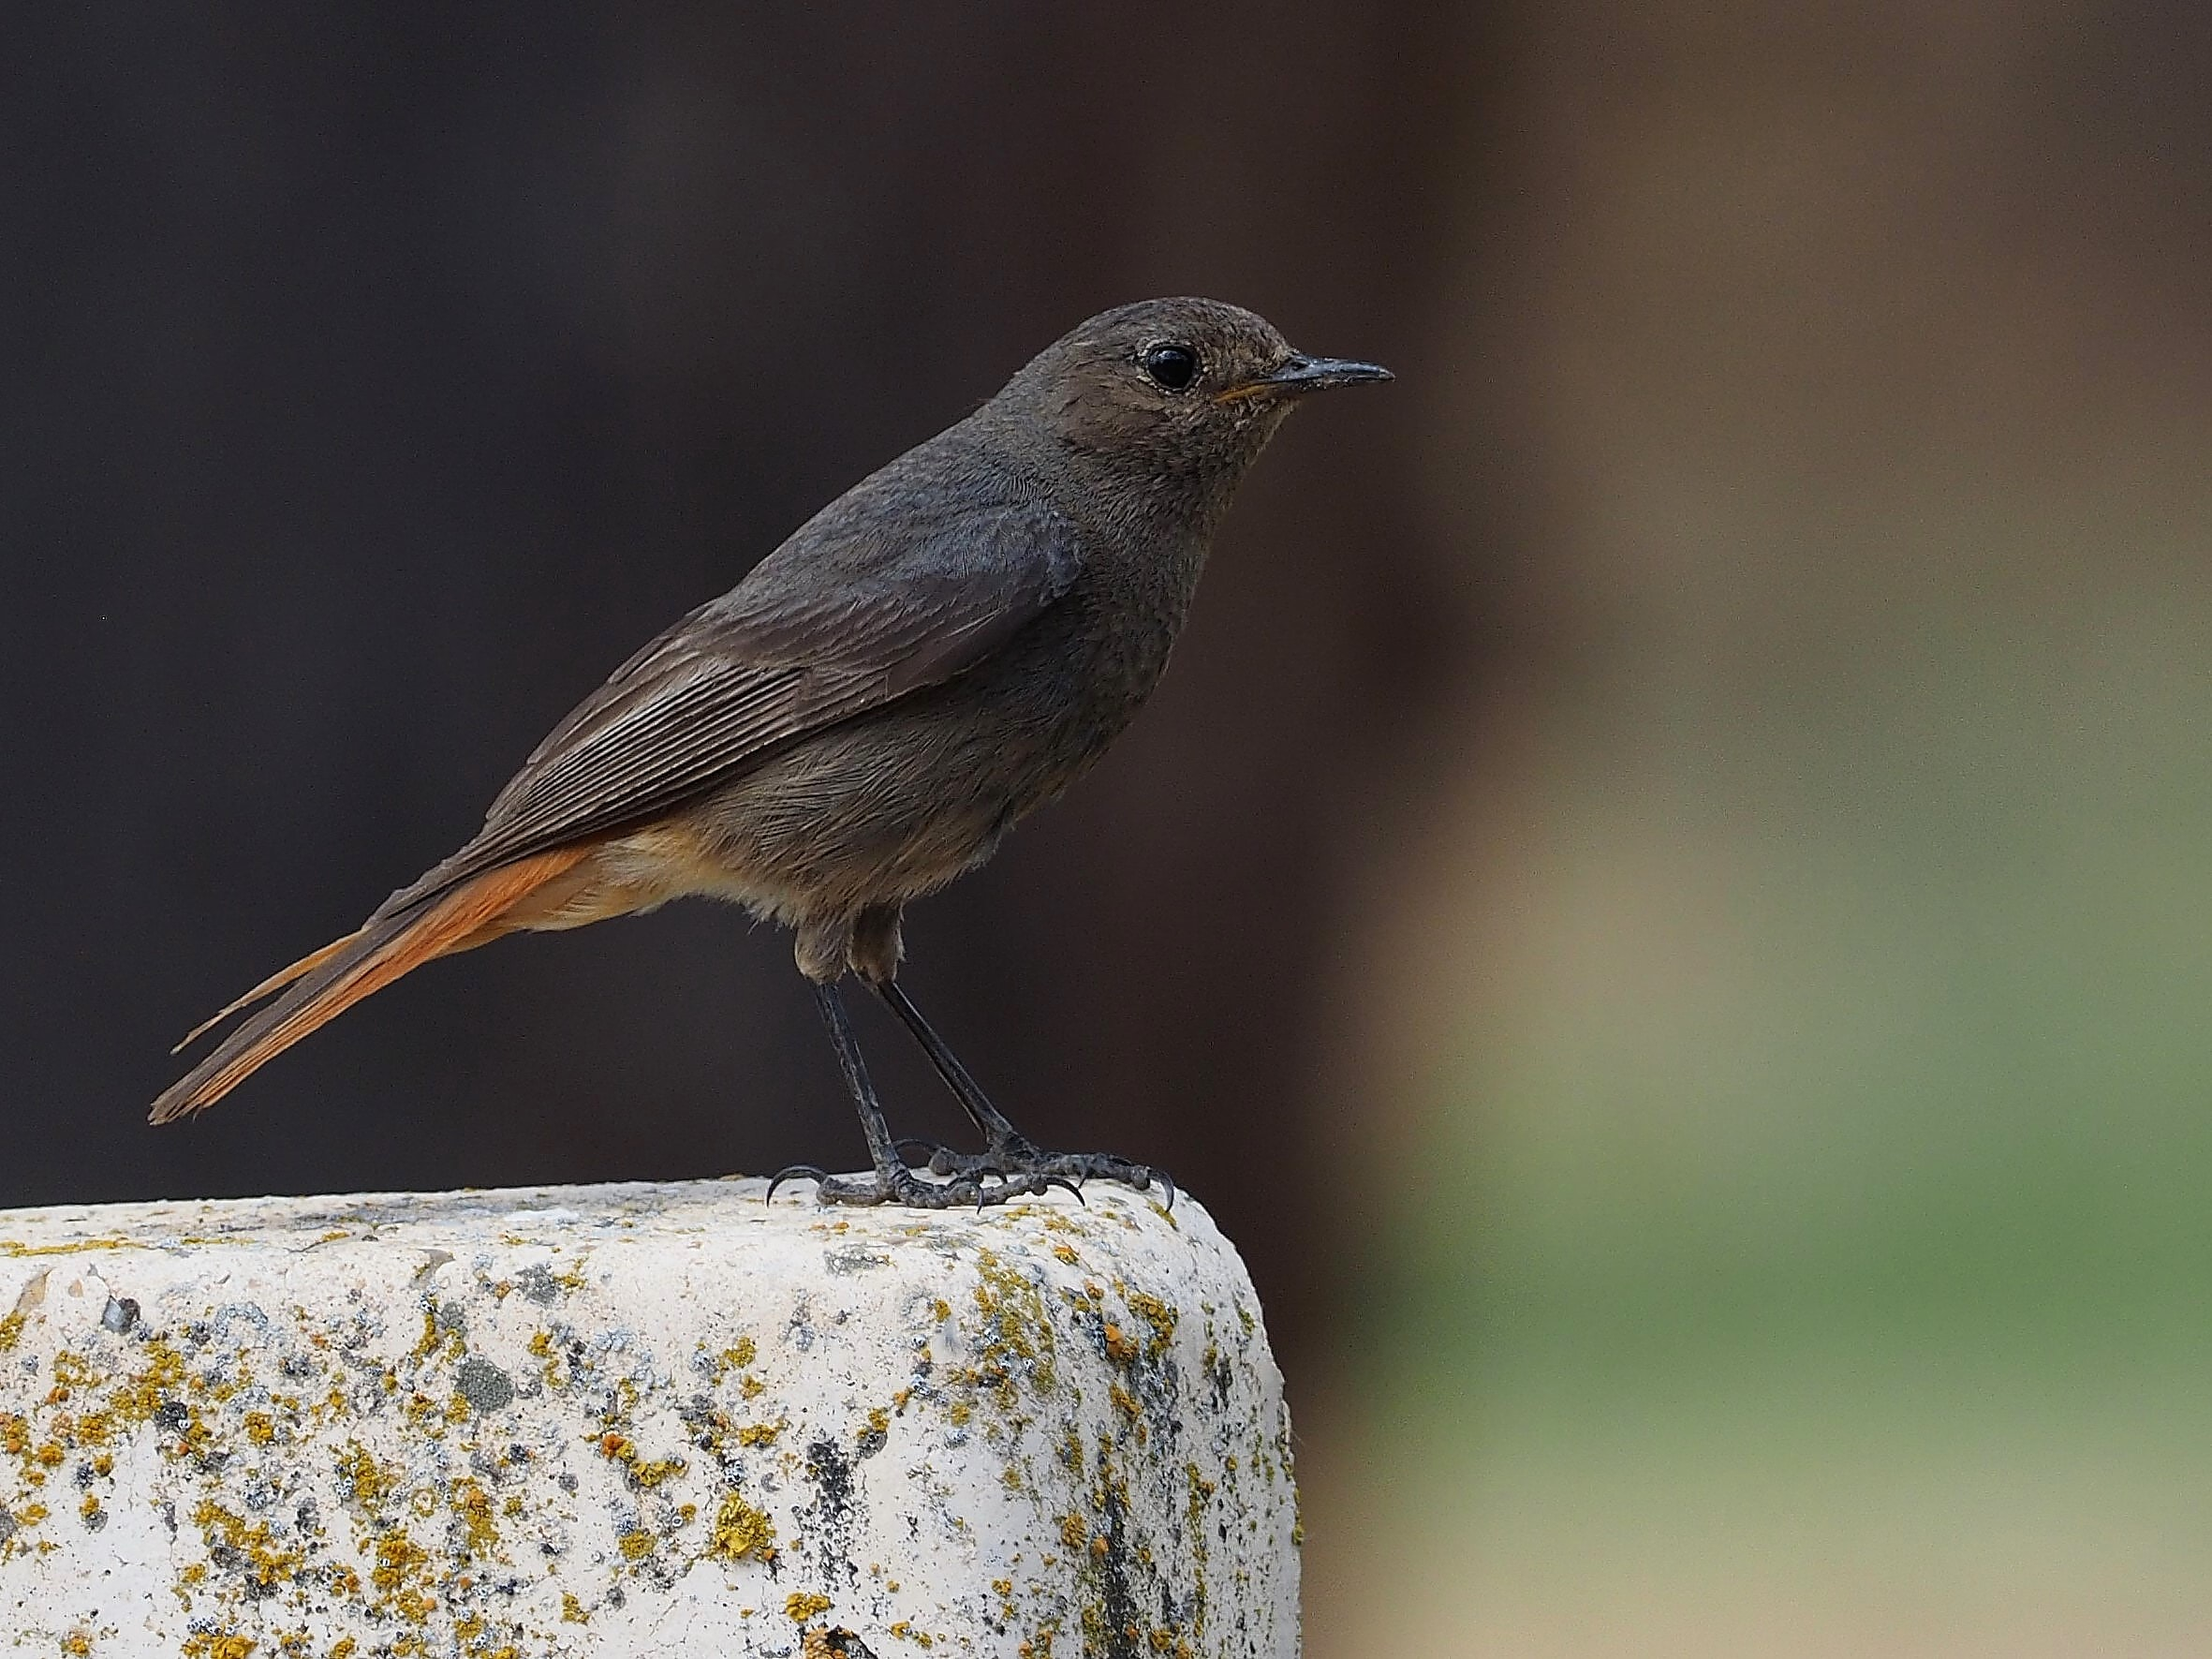 gray bird on brown stone in selective focus photography